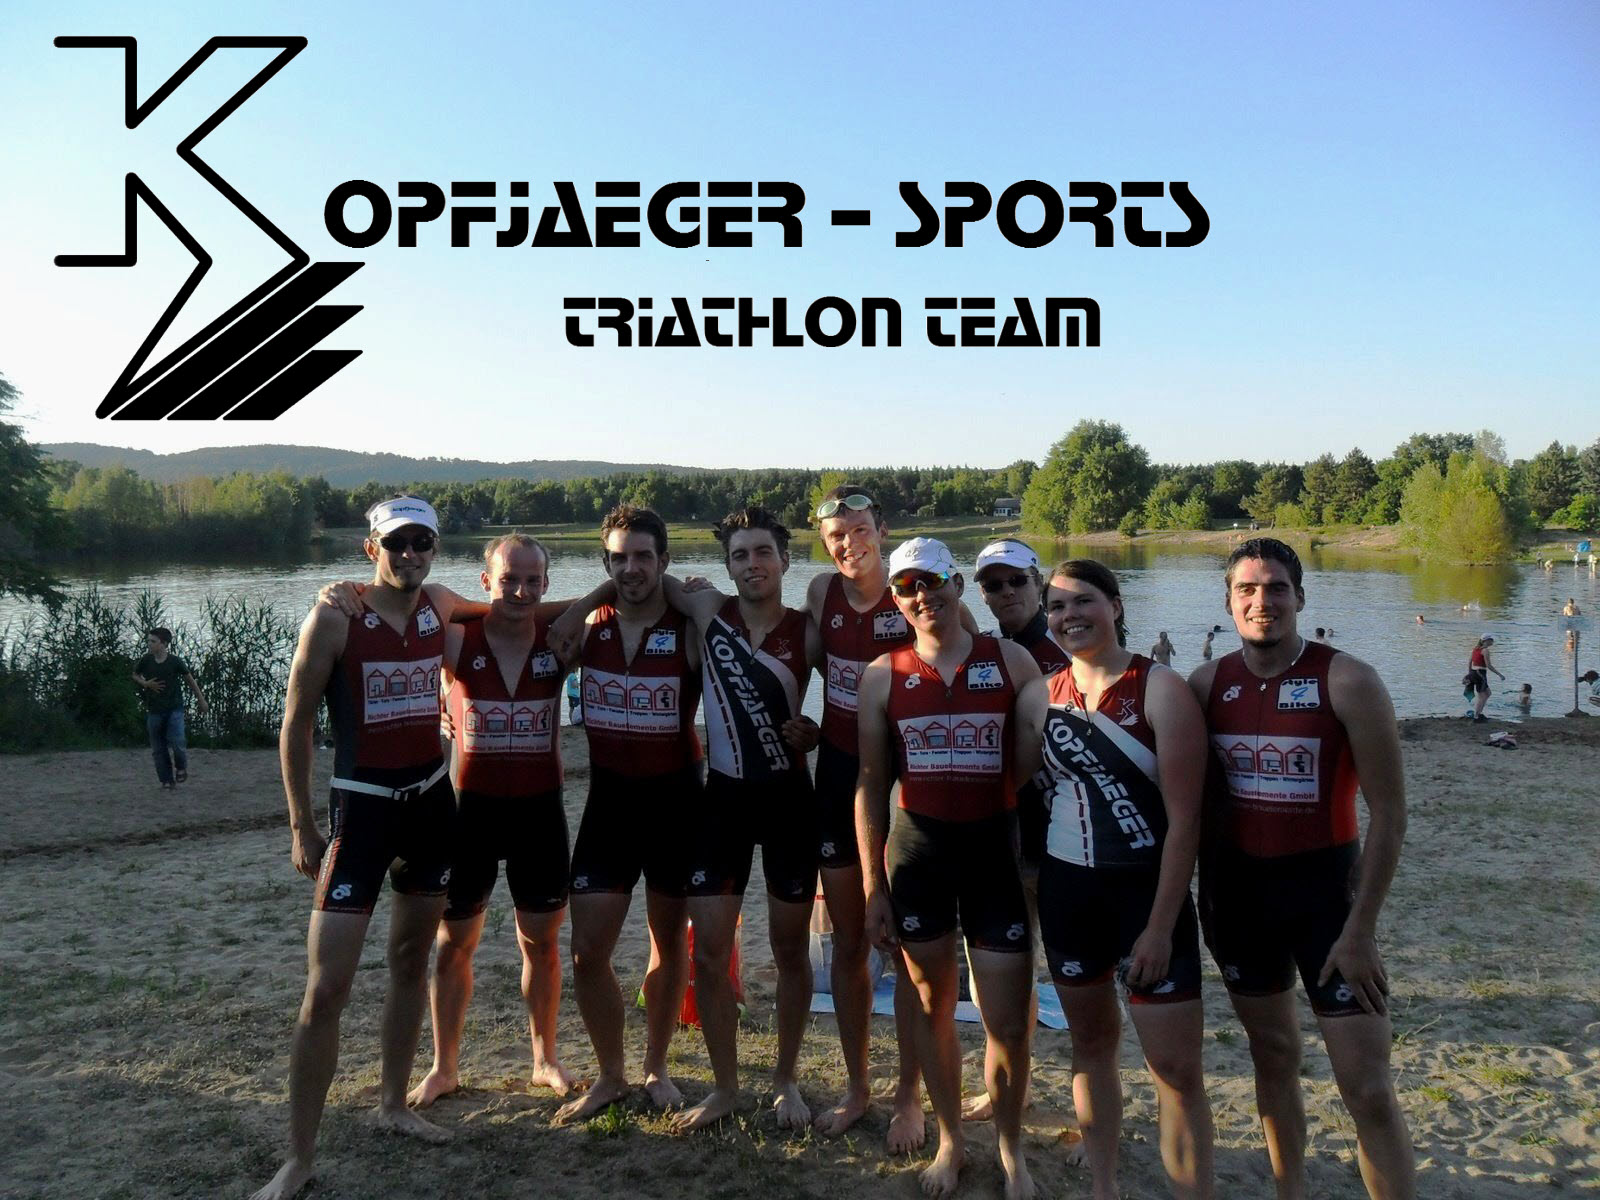 Die Triathleten des KOPFJAEGER-SPORTS 2012